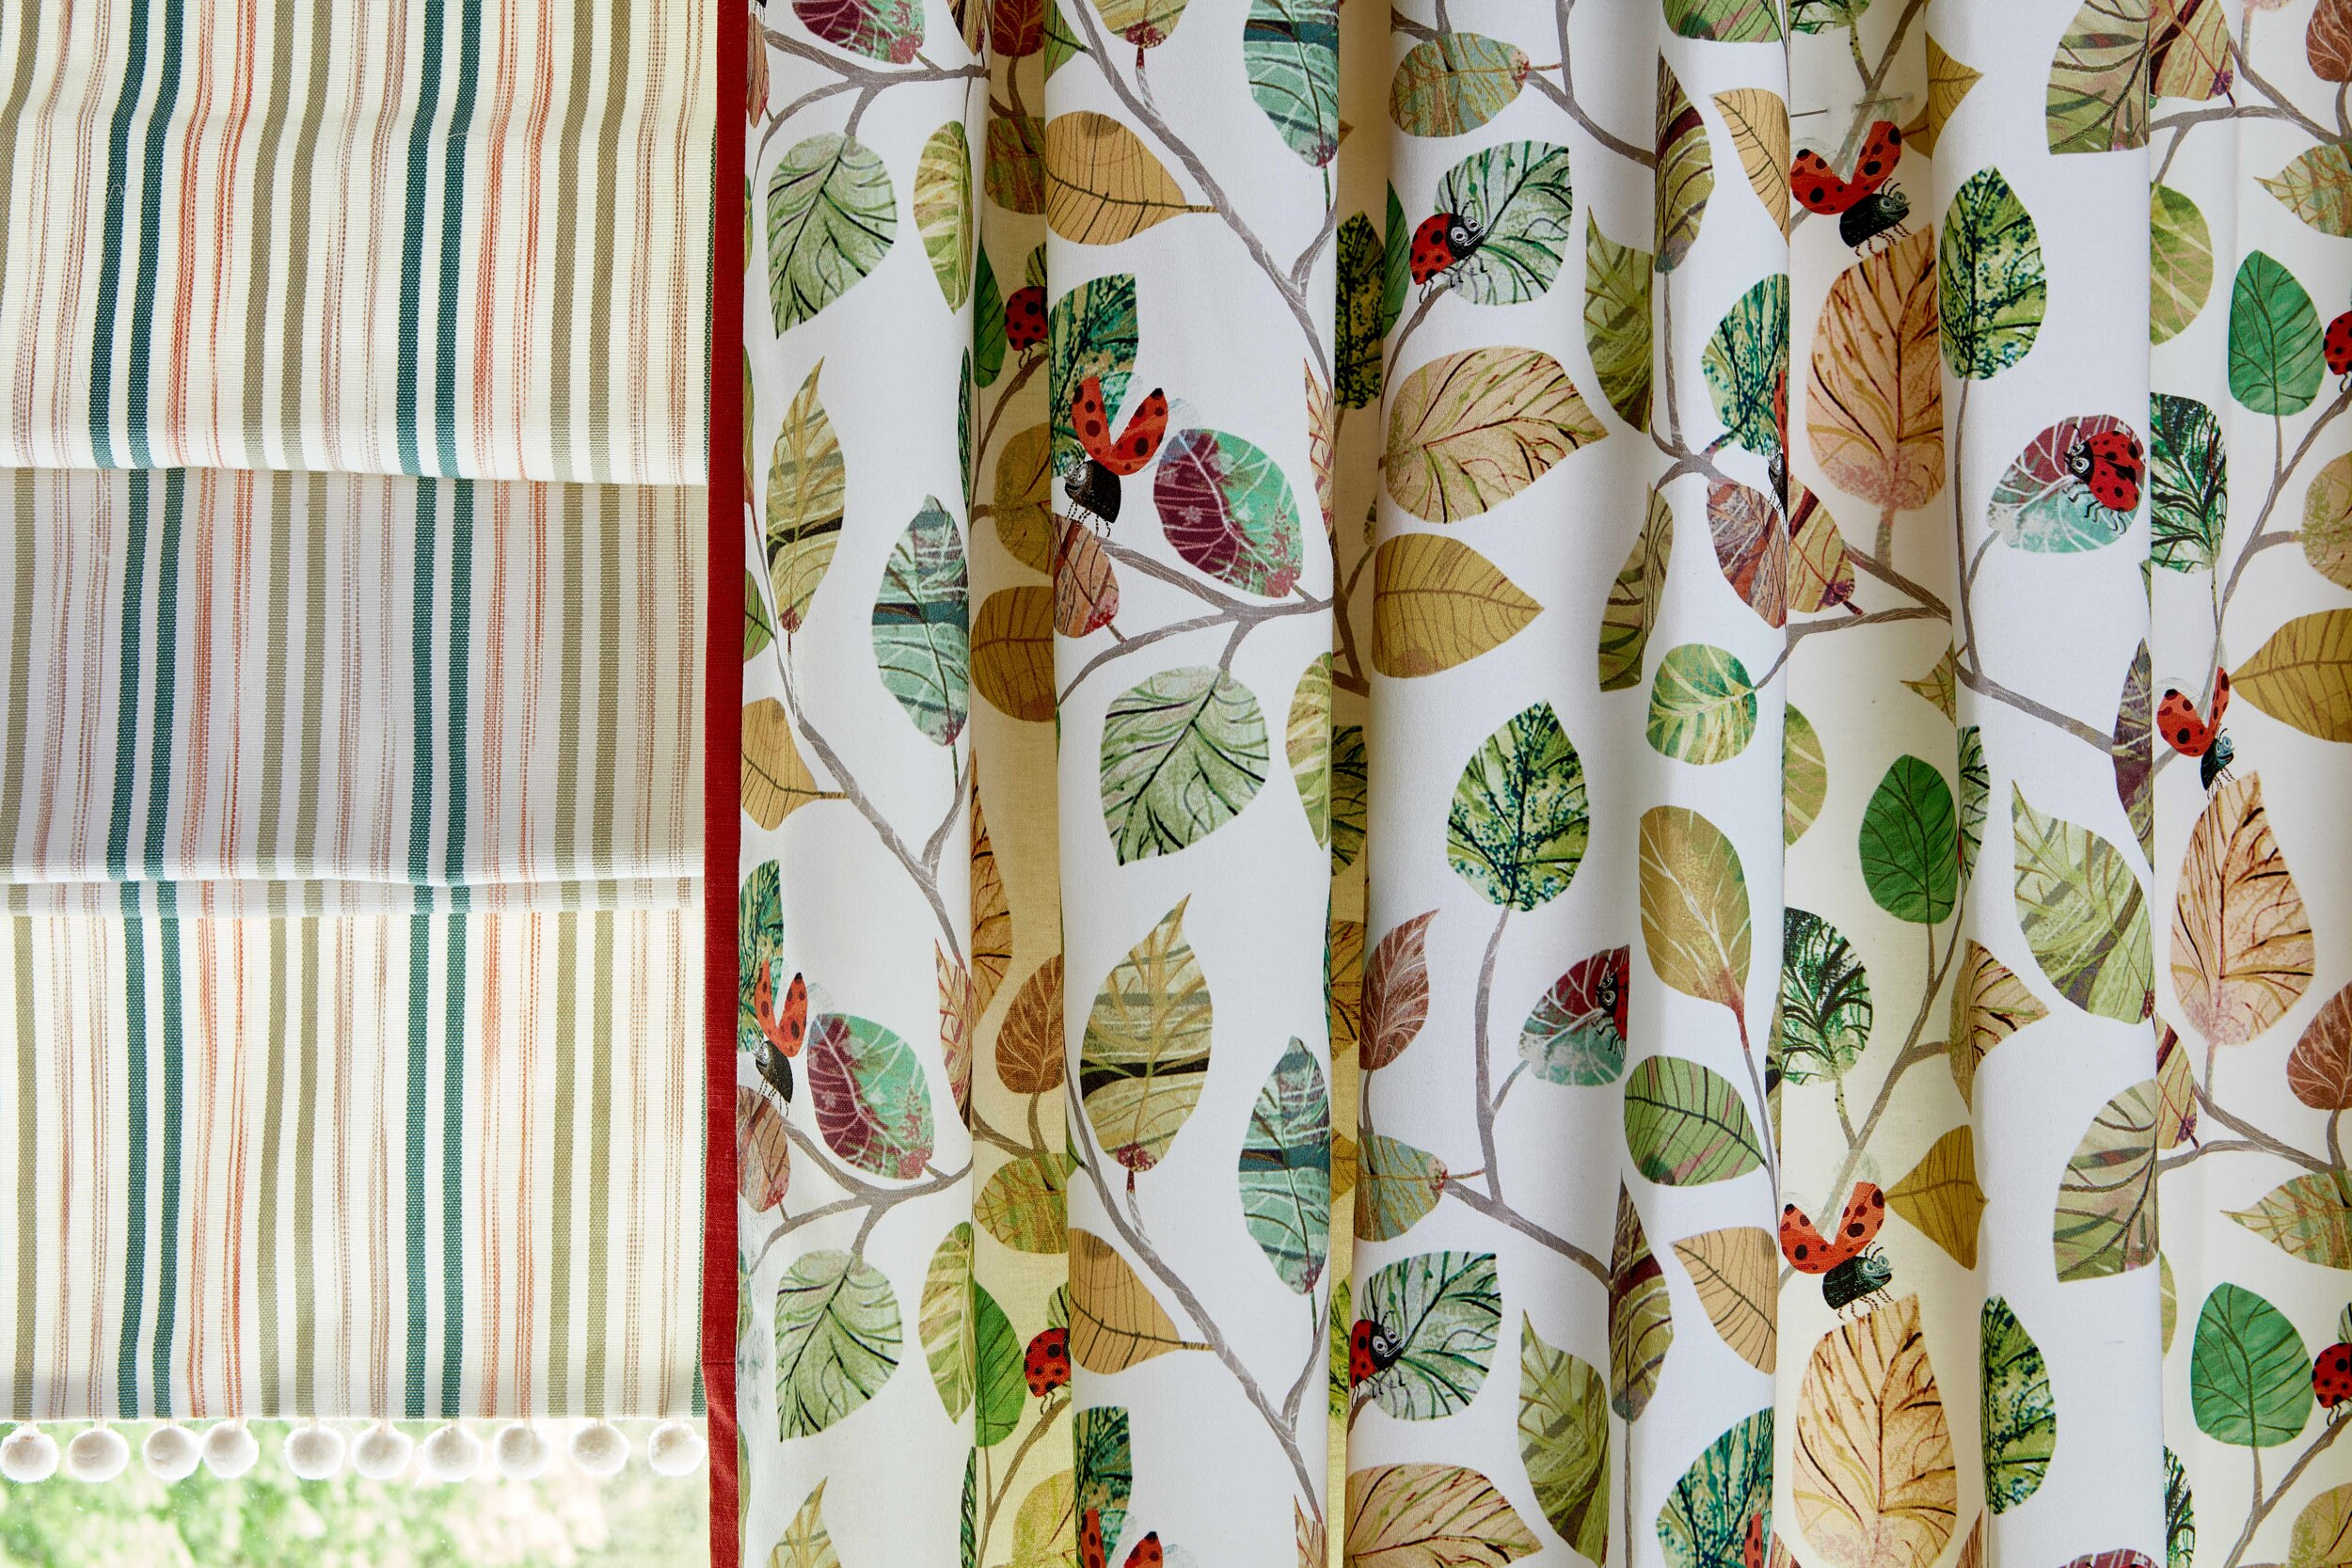 Zommer---Orchard---Curtain-022.jpg